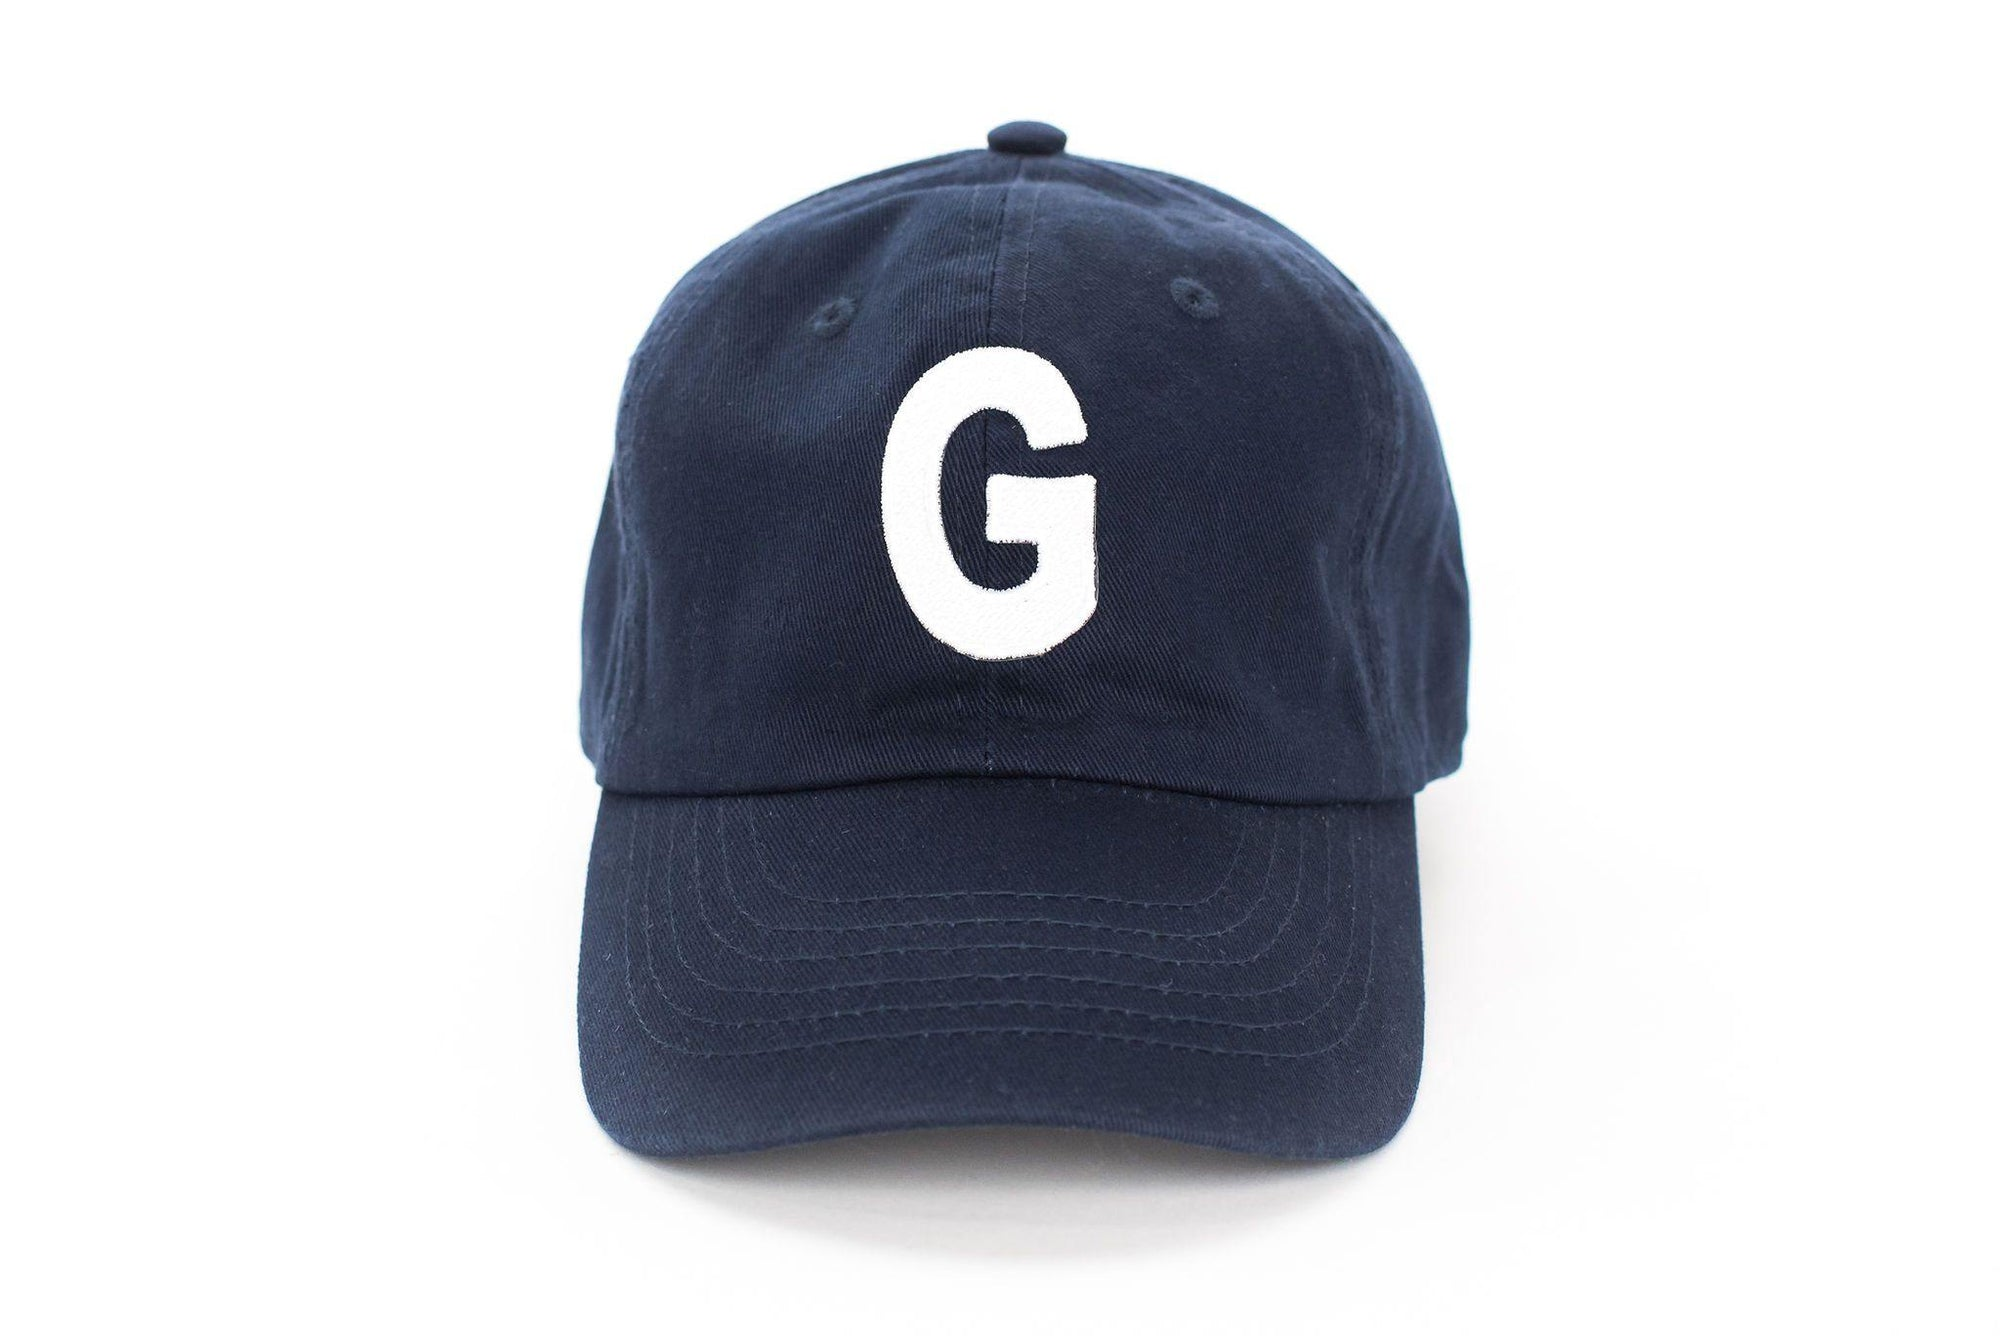 Imperfect Navy Hats